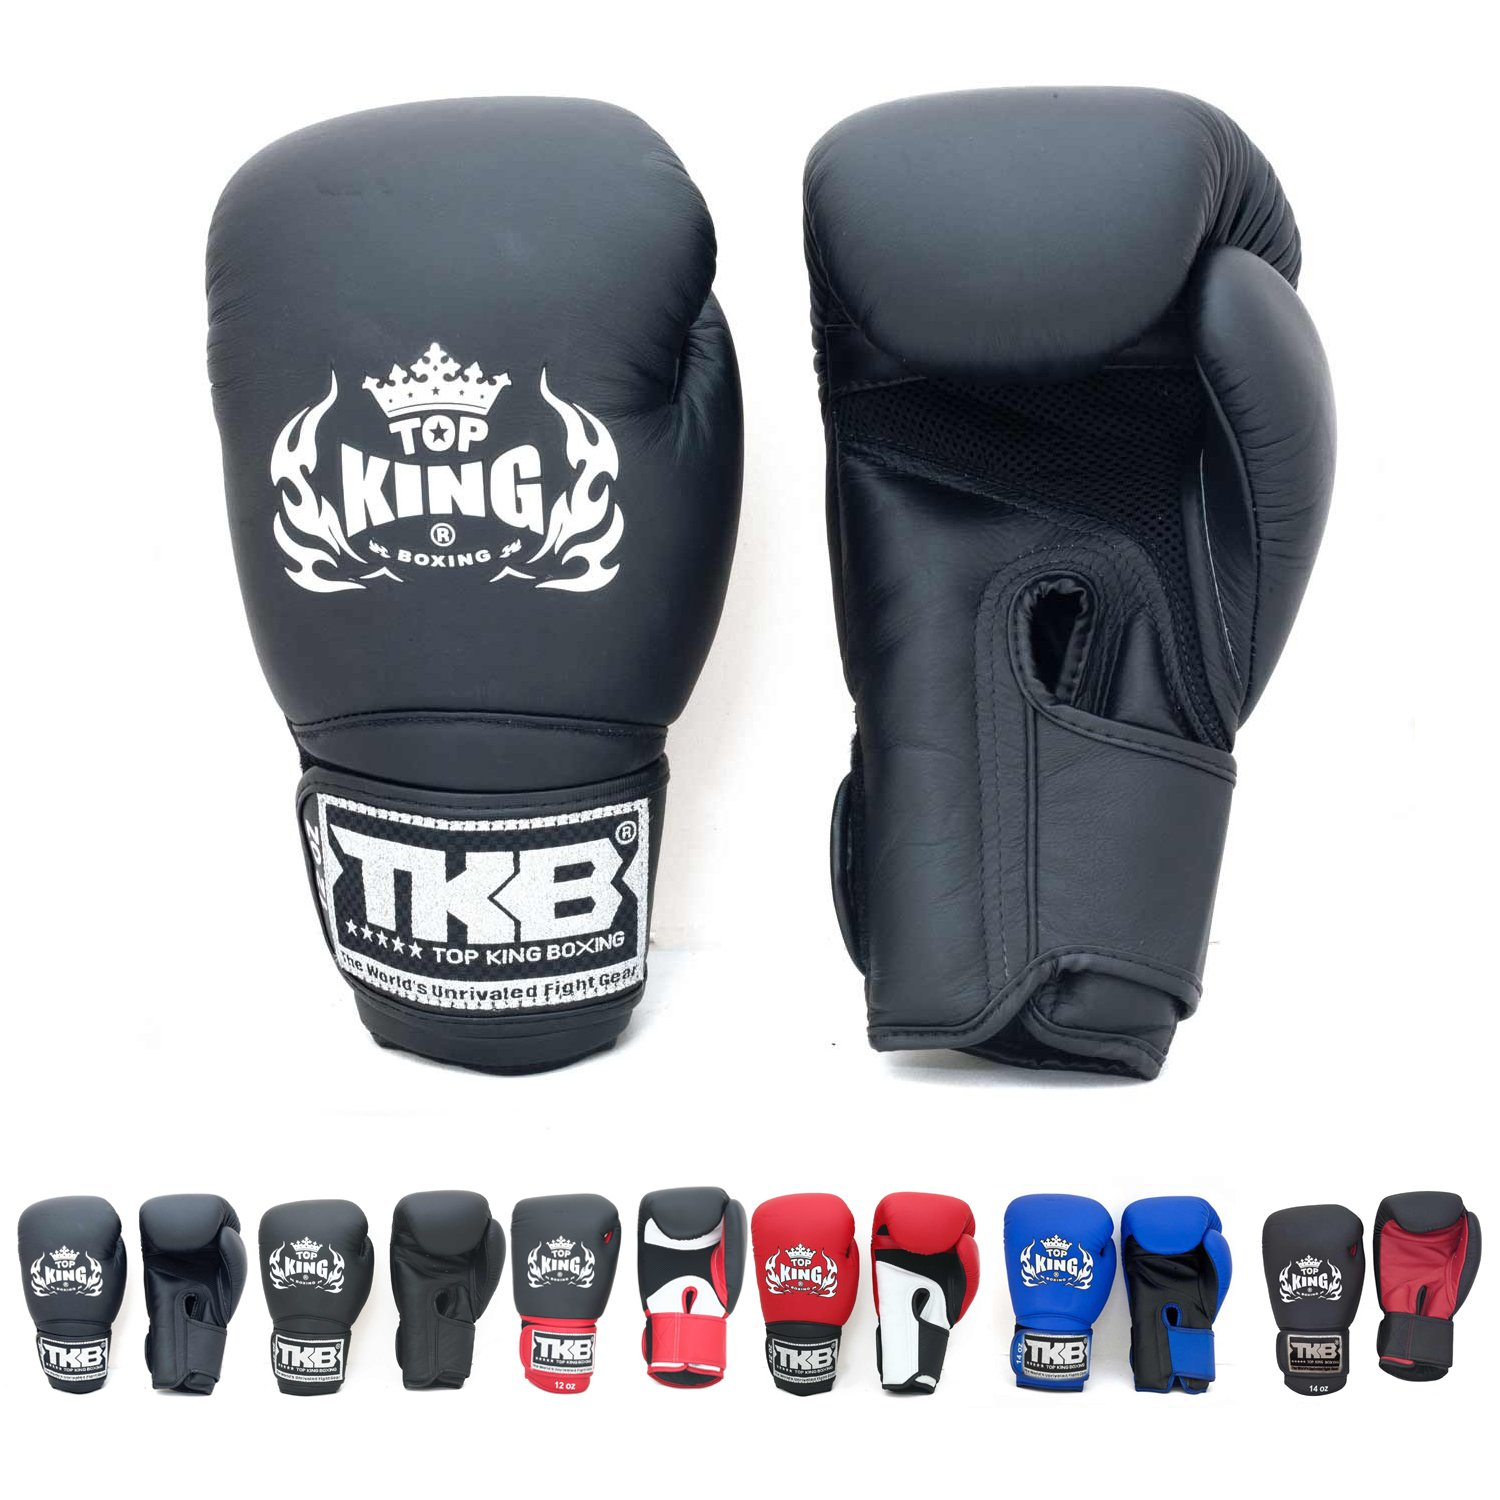 Top King Empower Muay Thai Boxing Gloves Black